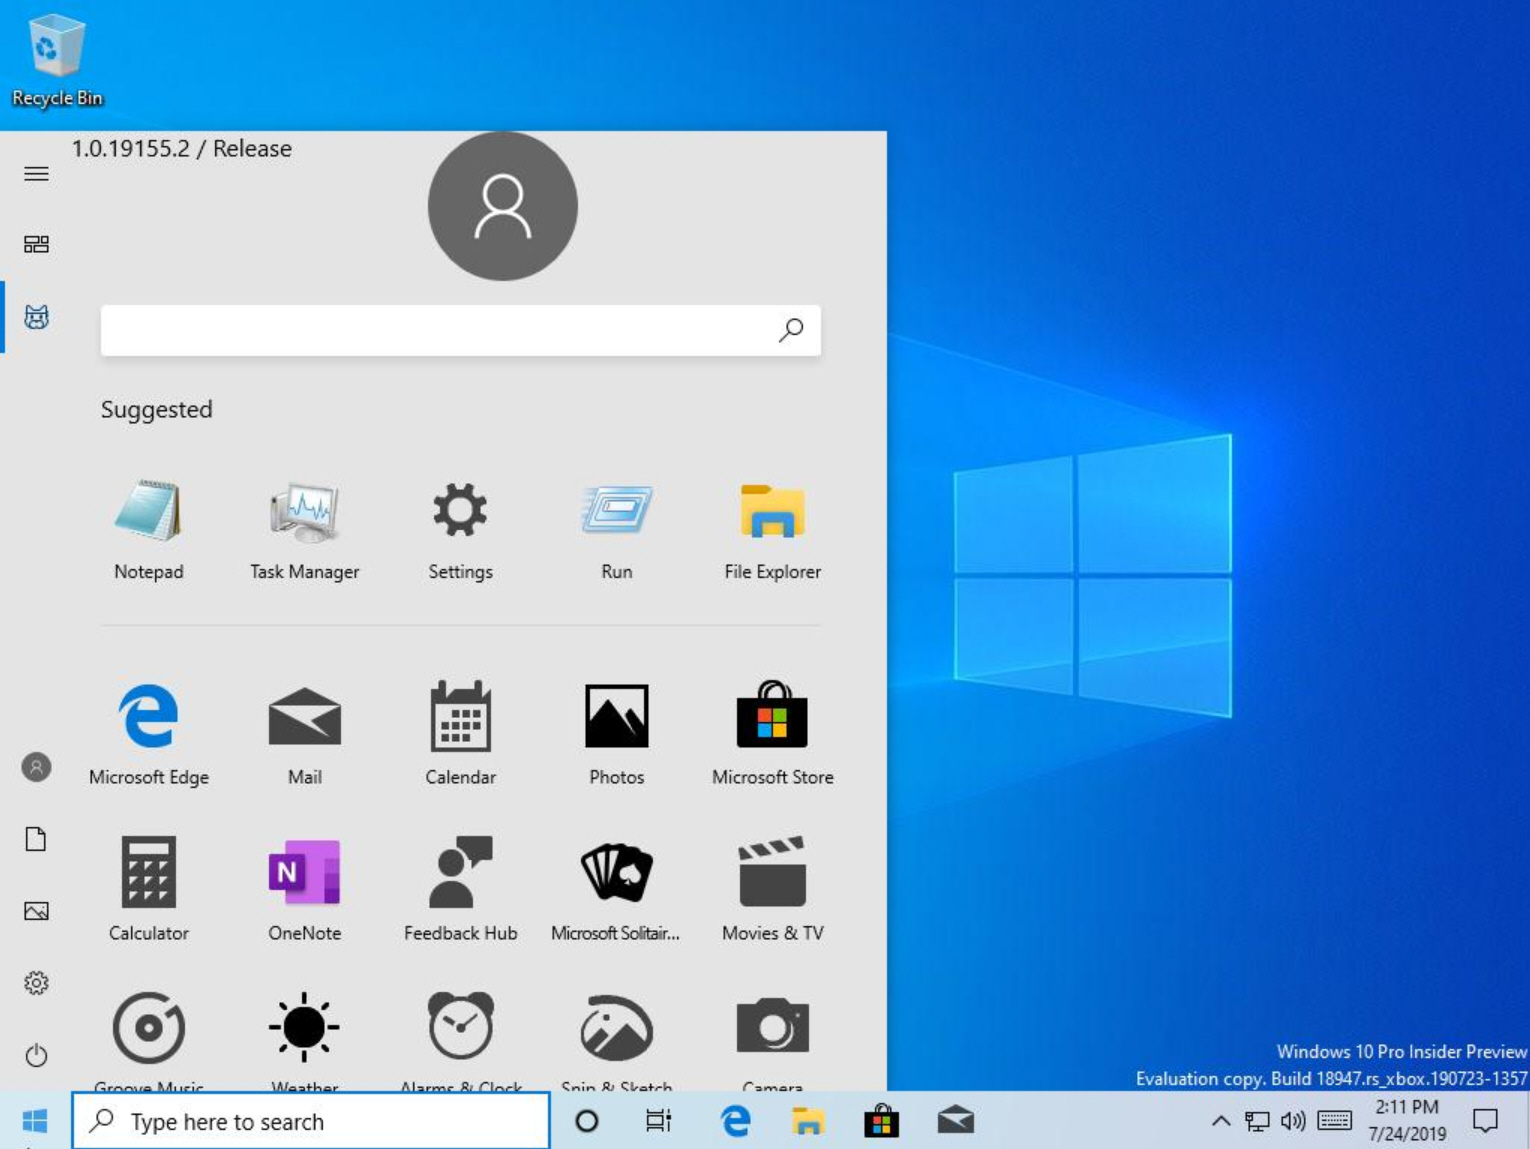 Microsoft accidentally releases internal Windows 10 preview